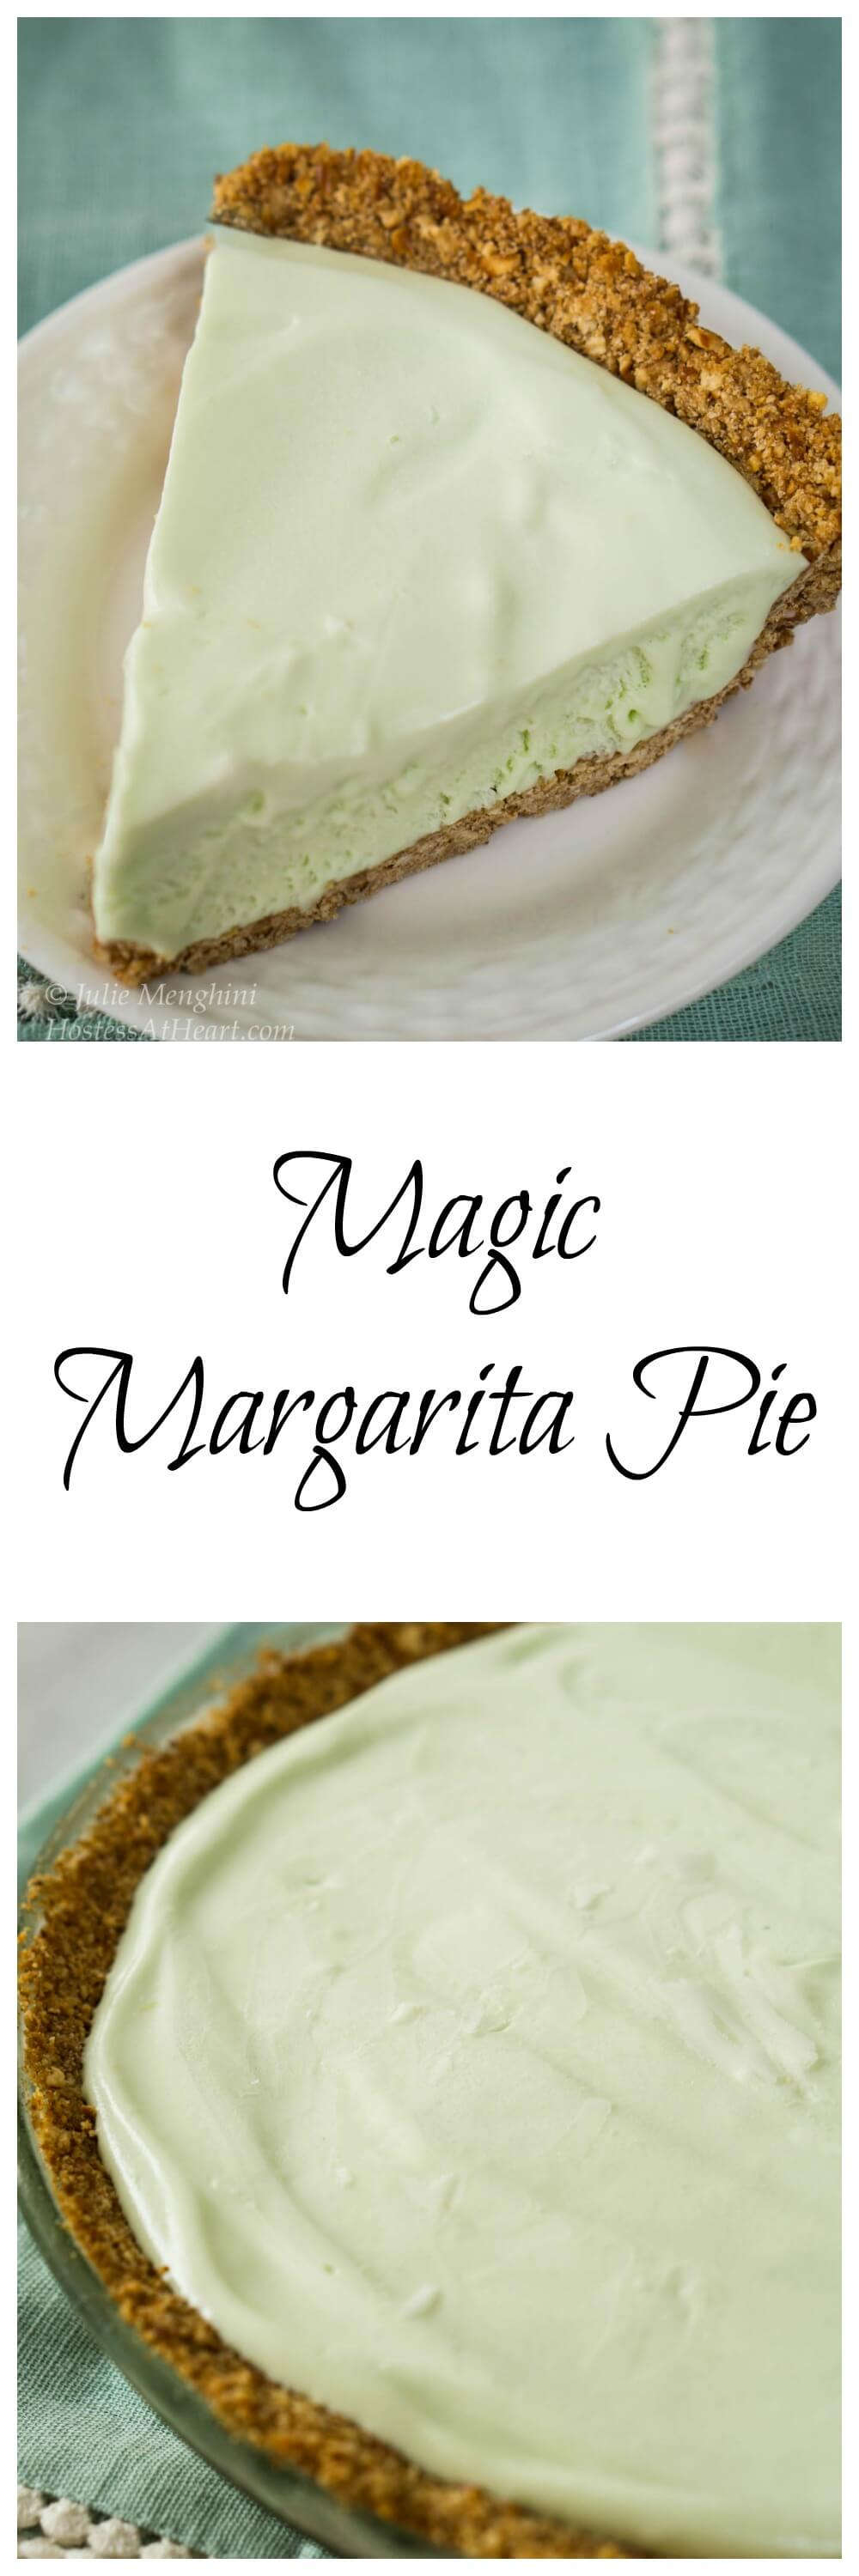 If you love margaritas and frozen pies, you're going to love this Magic Margarita Pie. It's quick to put together and a great way to celebrate Cinco de Mayo! | HostessAtHeart.com #homemade #pie #pierecipes #dessert | Pie Recipe Ideas | Frozen Pie Recipe